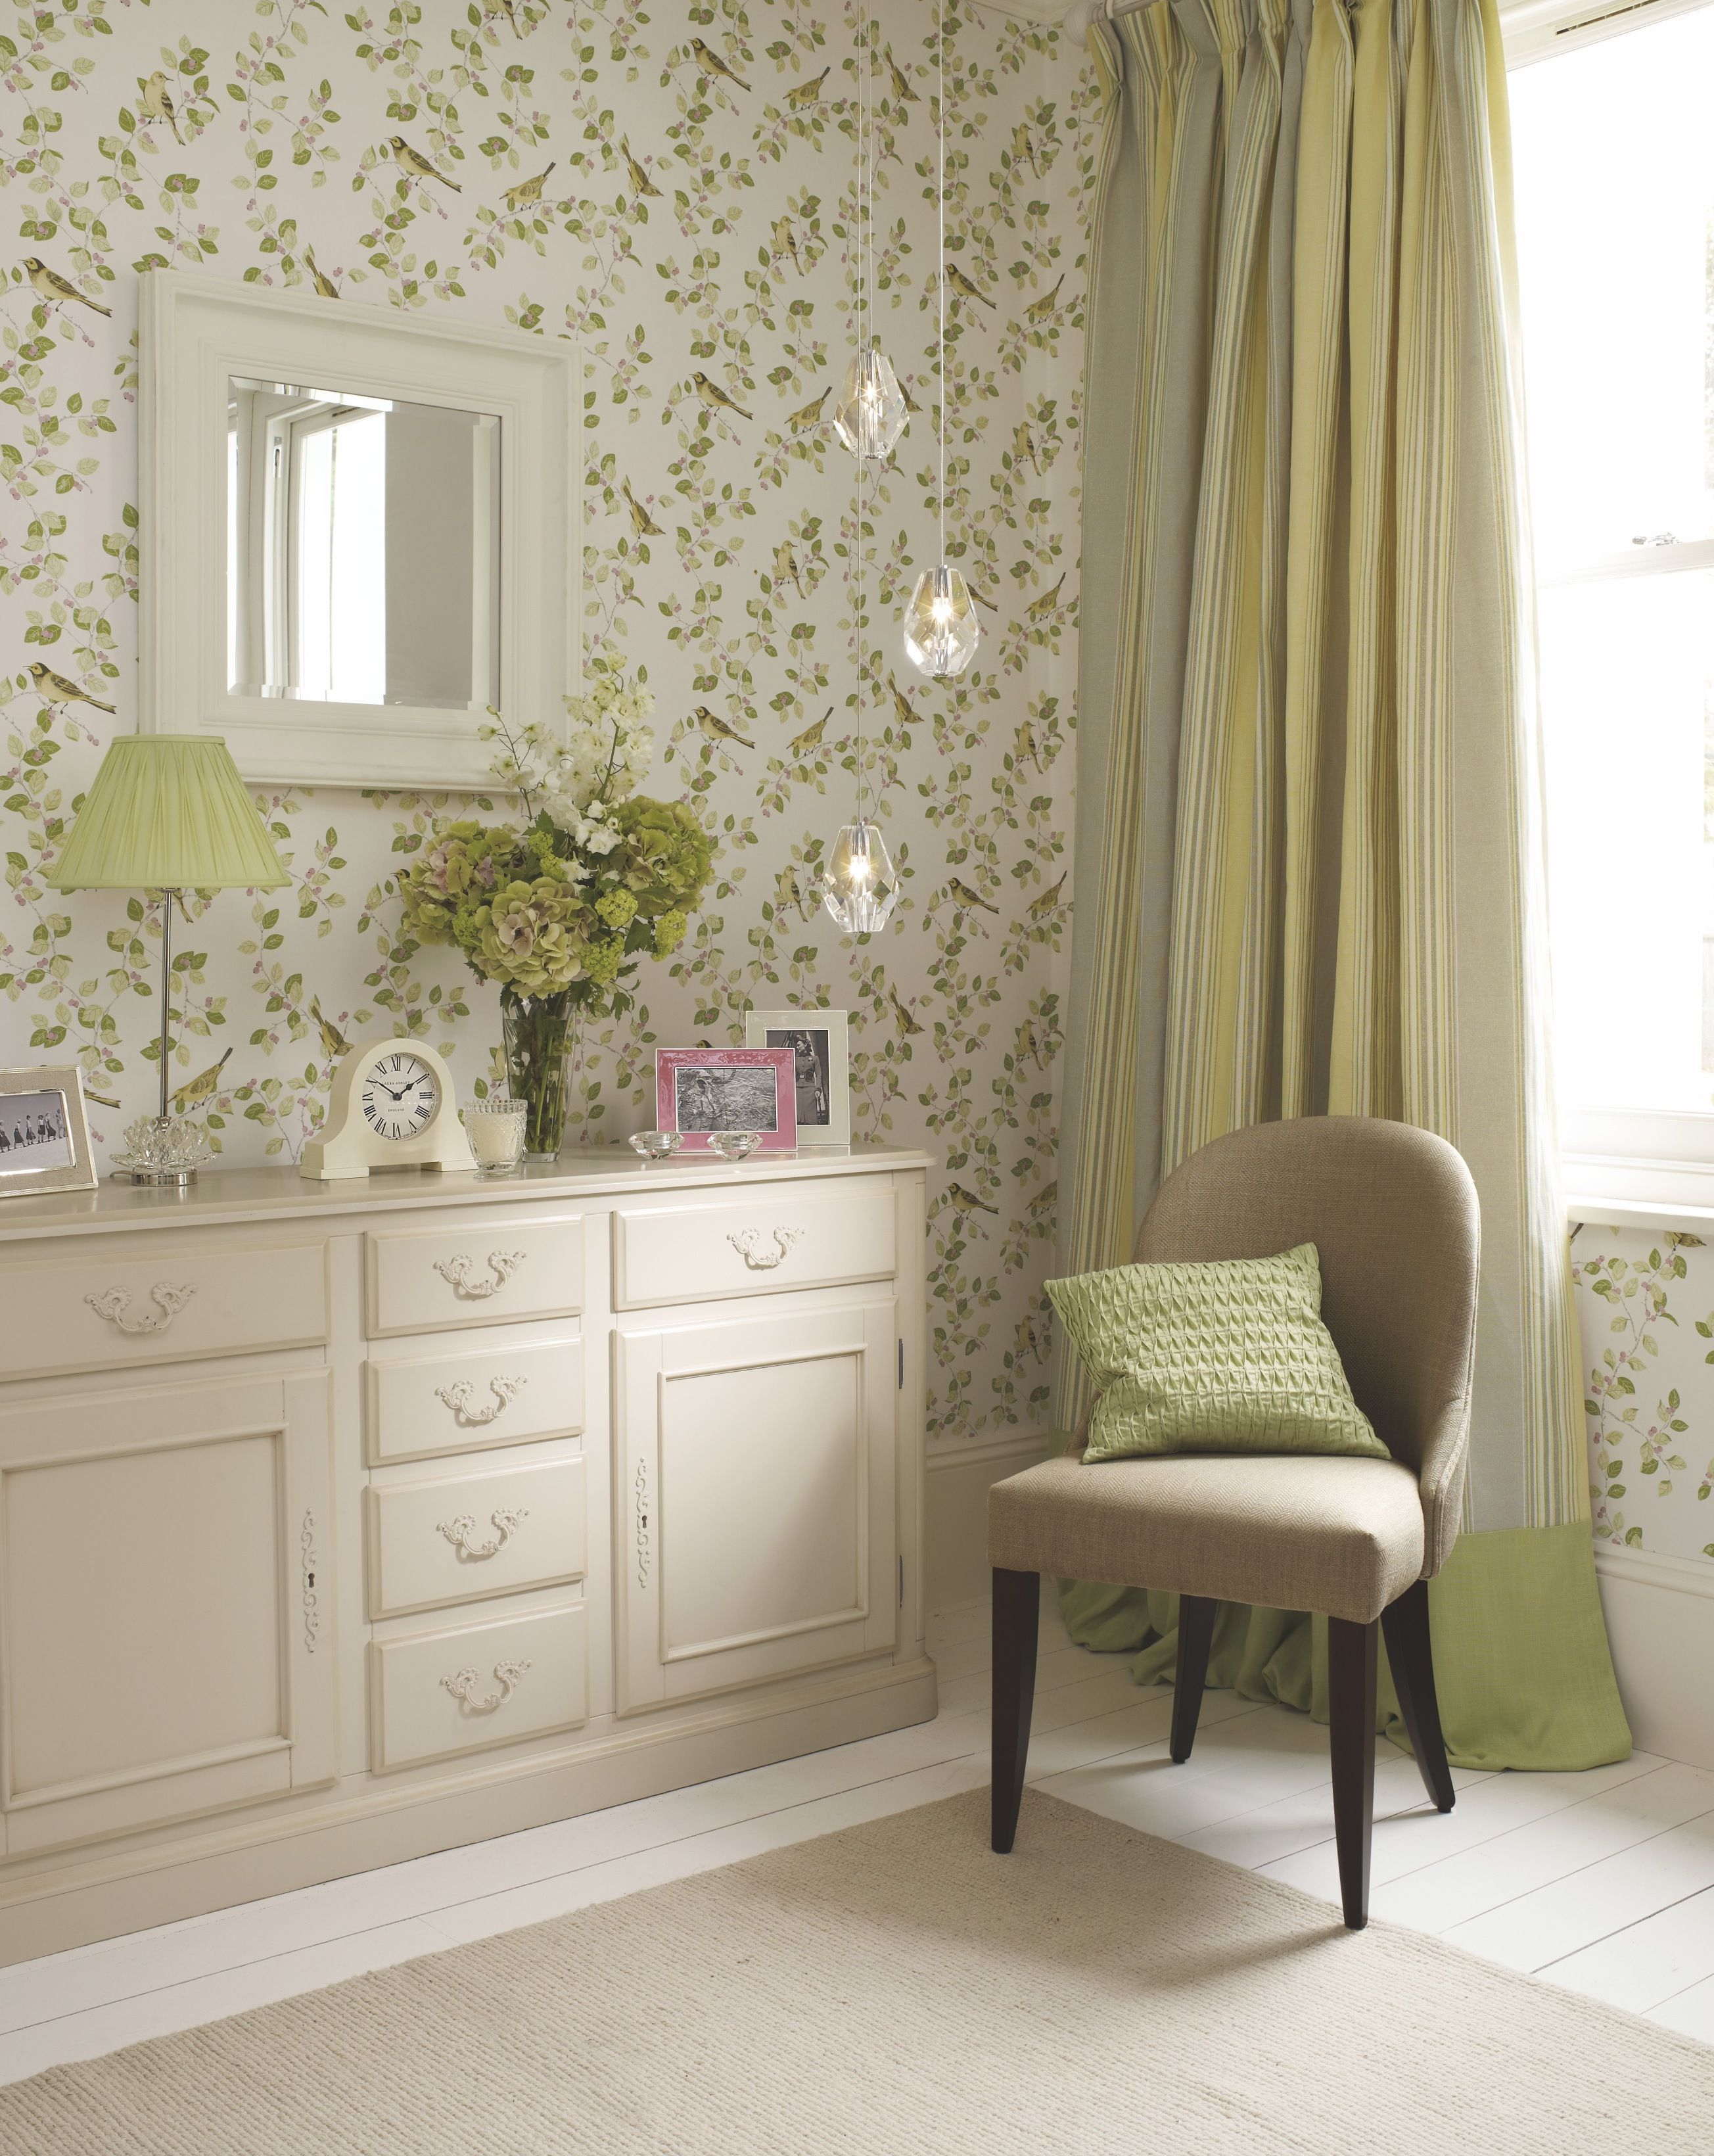 Flower marquee spring summer 2014 laura ashley home collection laura ashley laura - Muebles laura ashley ...